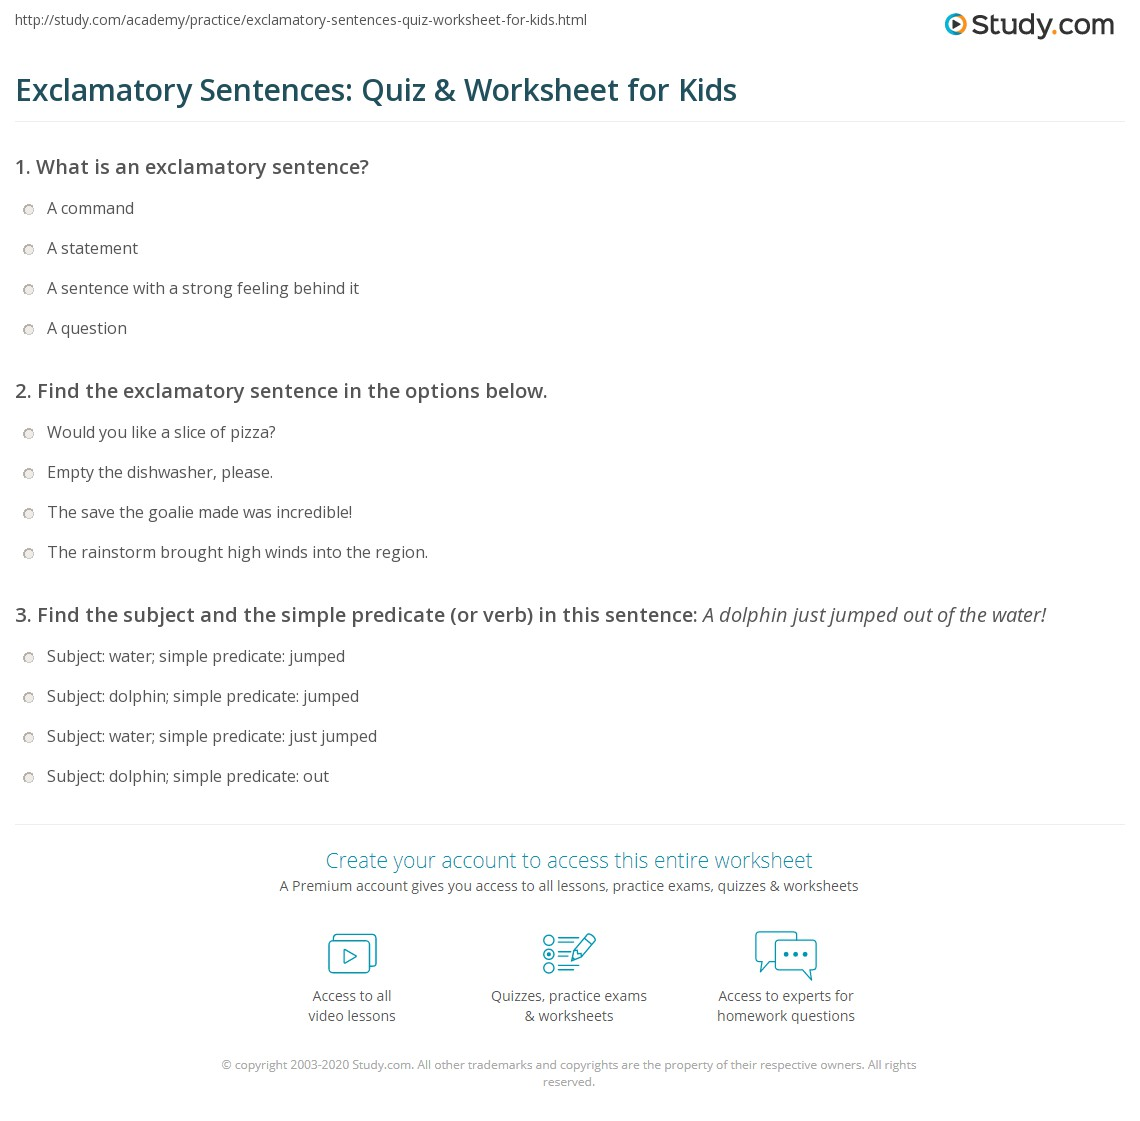 Worksheets Imperative And Exclamatory Sentences Worksheet exclamatory sentences quiz worksheet for kids study com print lesson worksheet